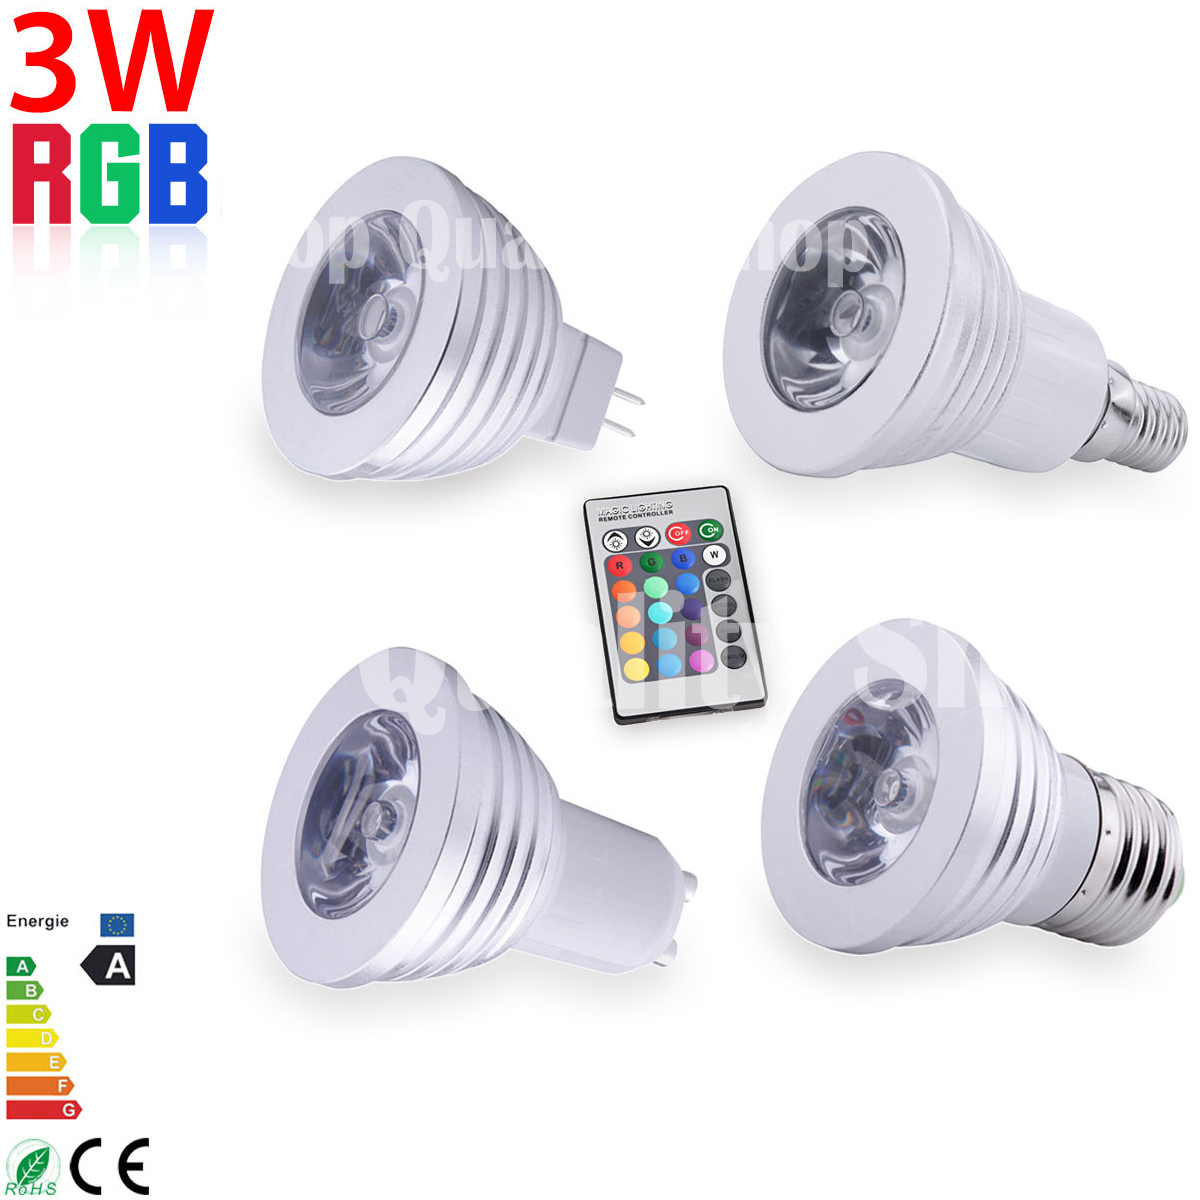 gu10 mr16 e14 e27 3w fernbedienung farbwechsel rgb led spot licht light lampe ebay. Black Bedroom Furniture Sets. Home Design Ideas